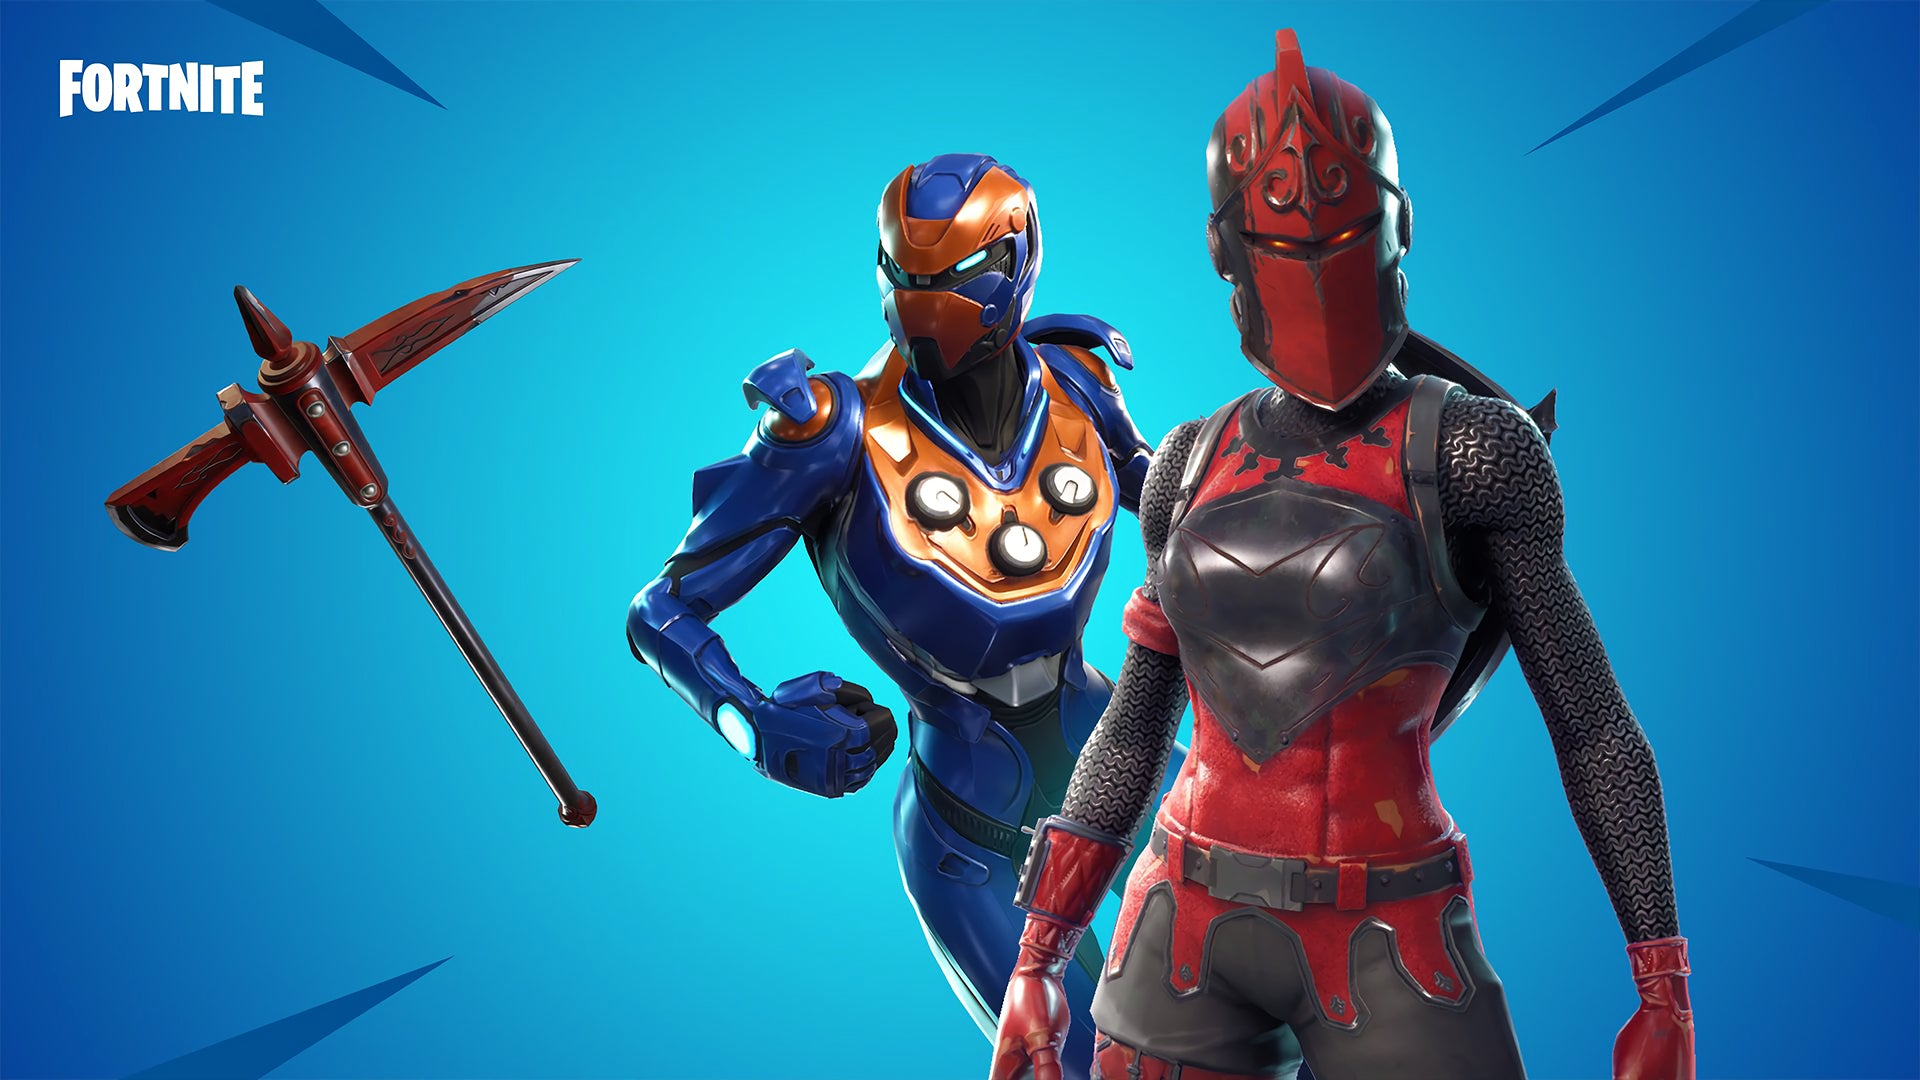 2019 Red Knight Fortnite Wallpapers For Desktop Fortnite Costume For Kids